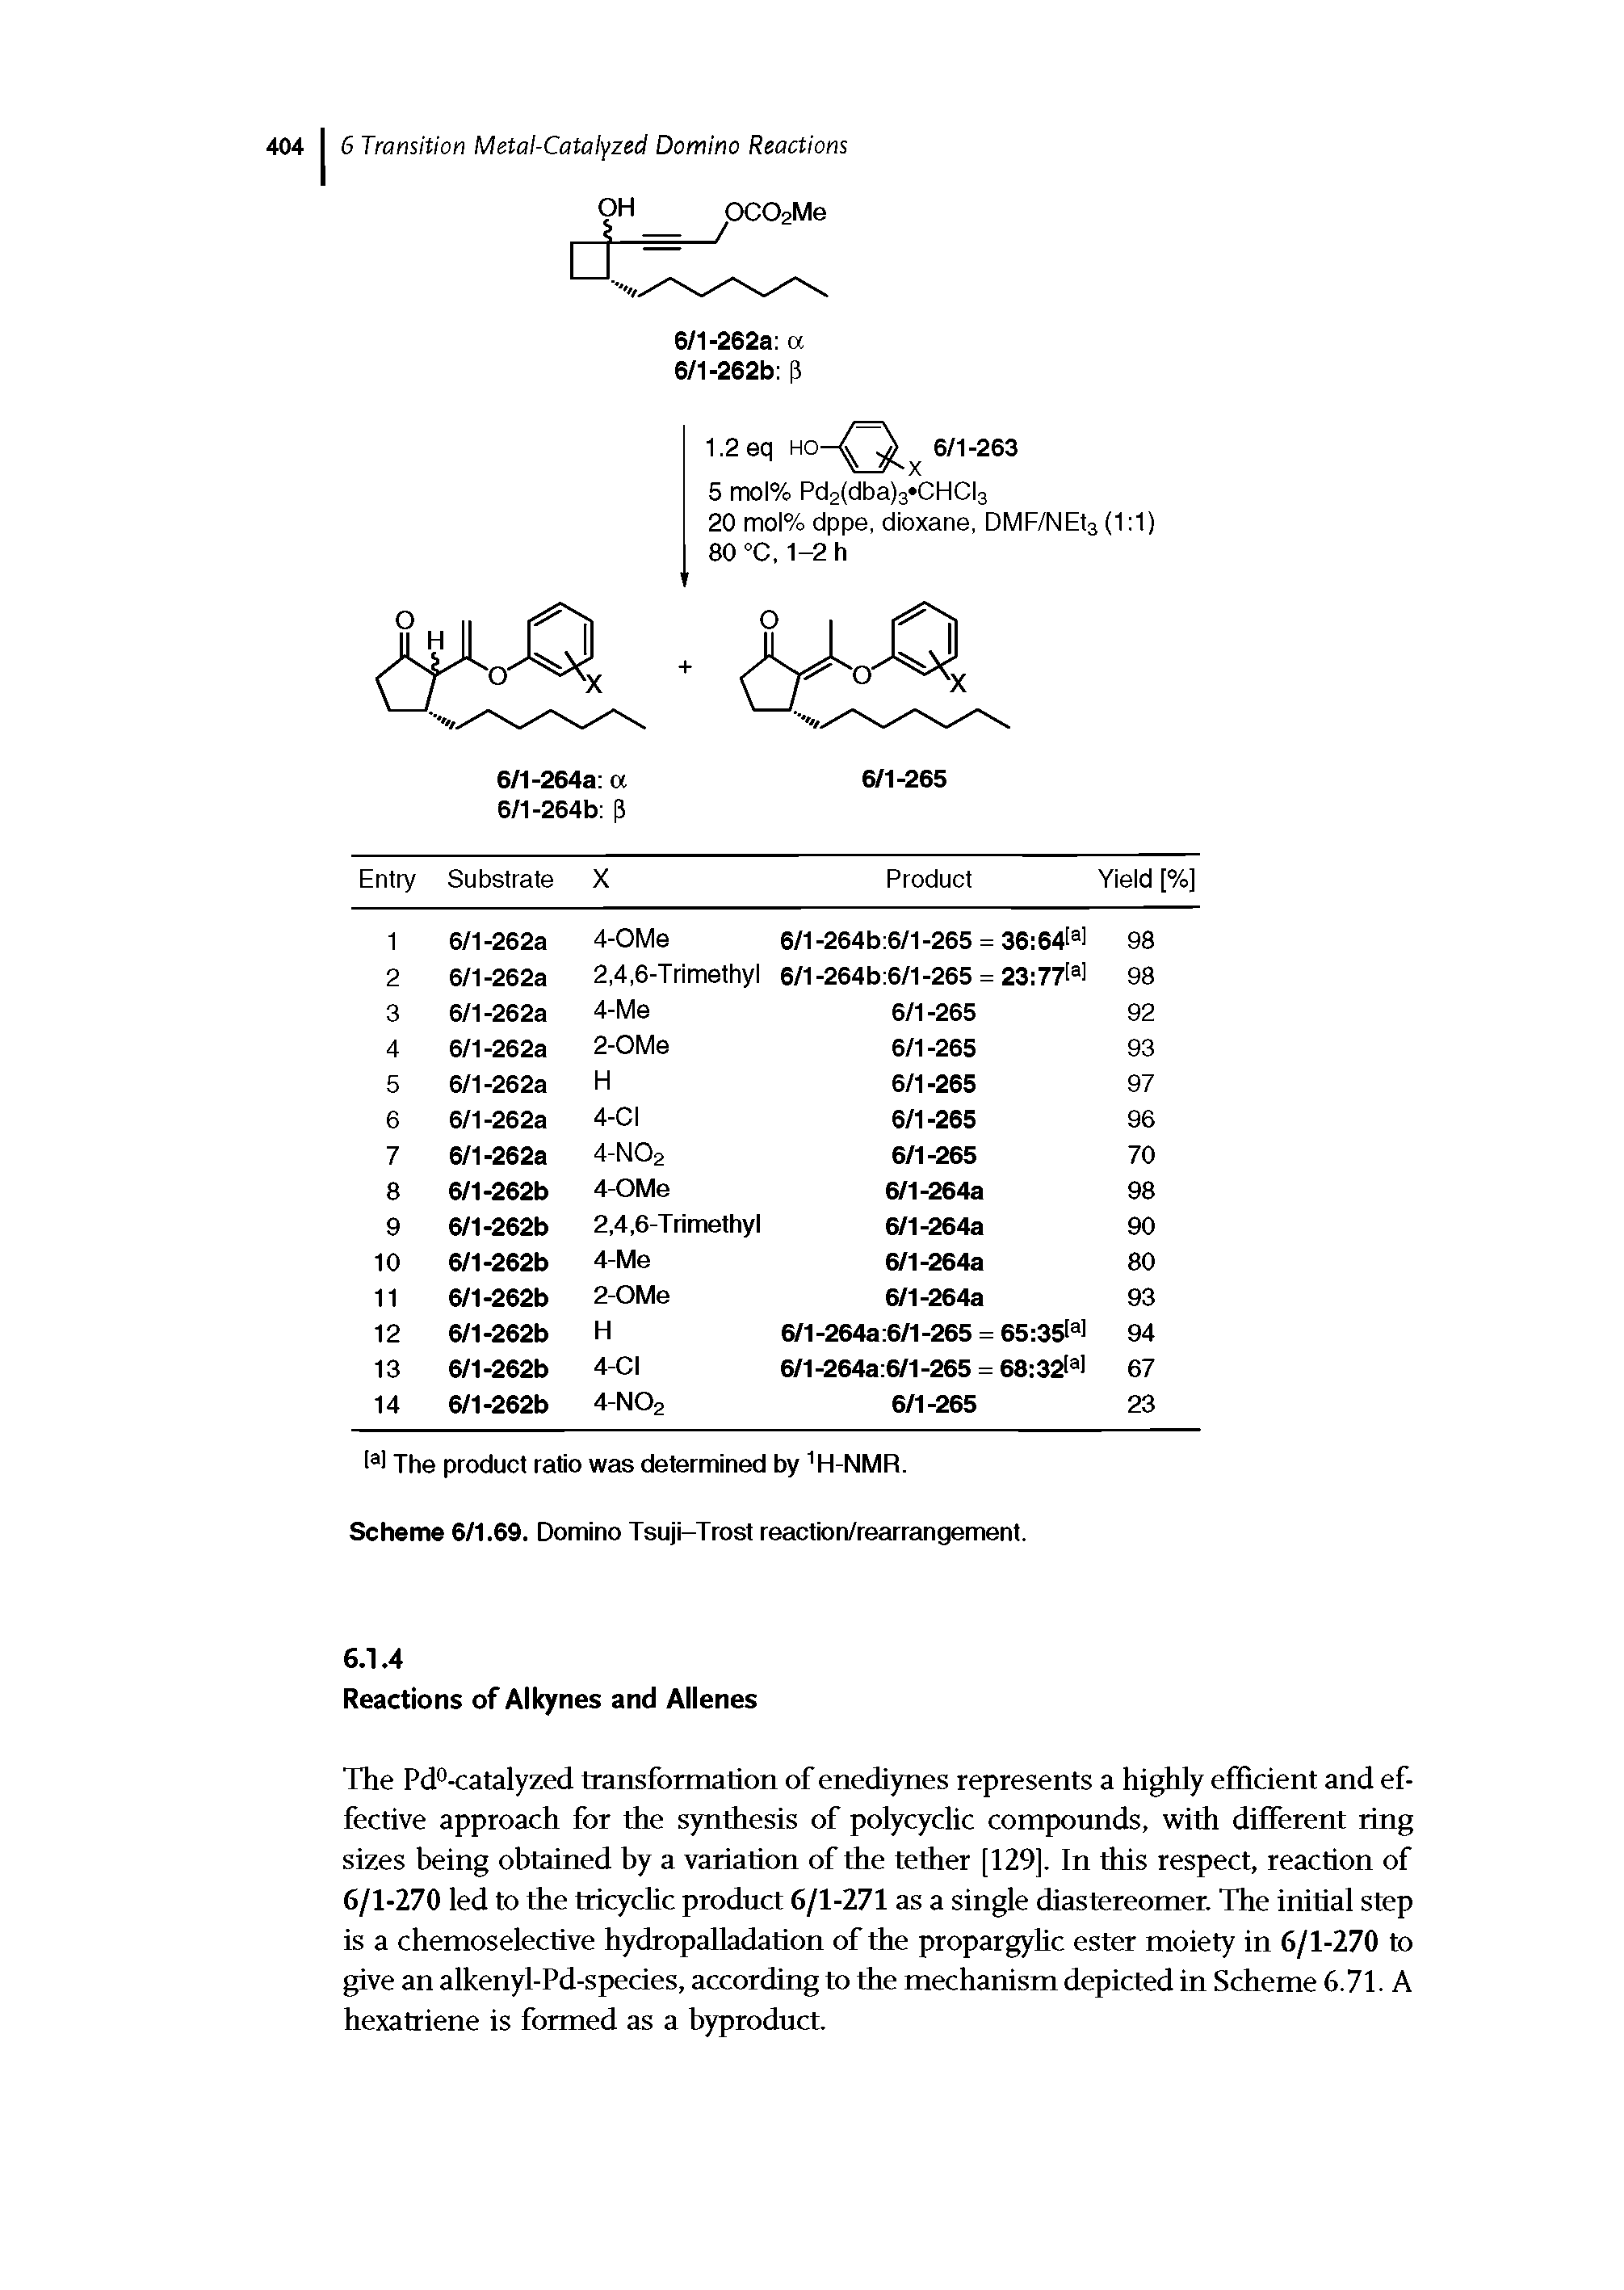 Scheme 6/1.69. Domino Tsuji-Trost reaction/rearrangement.